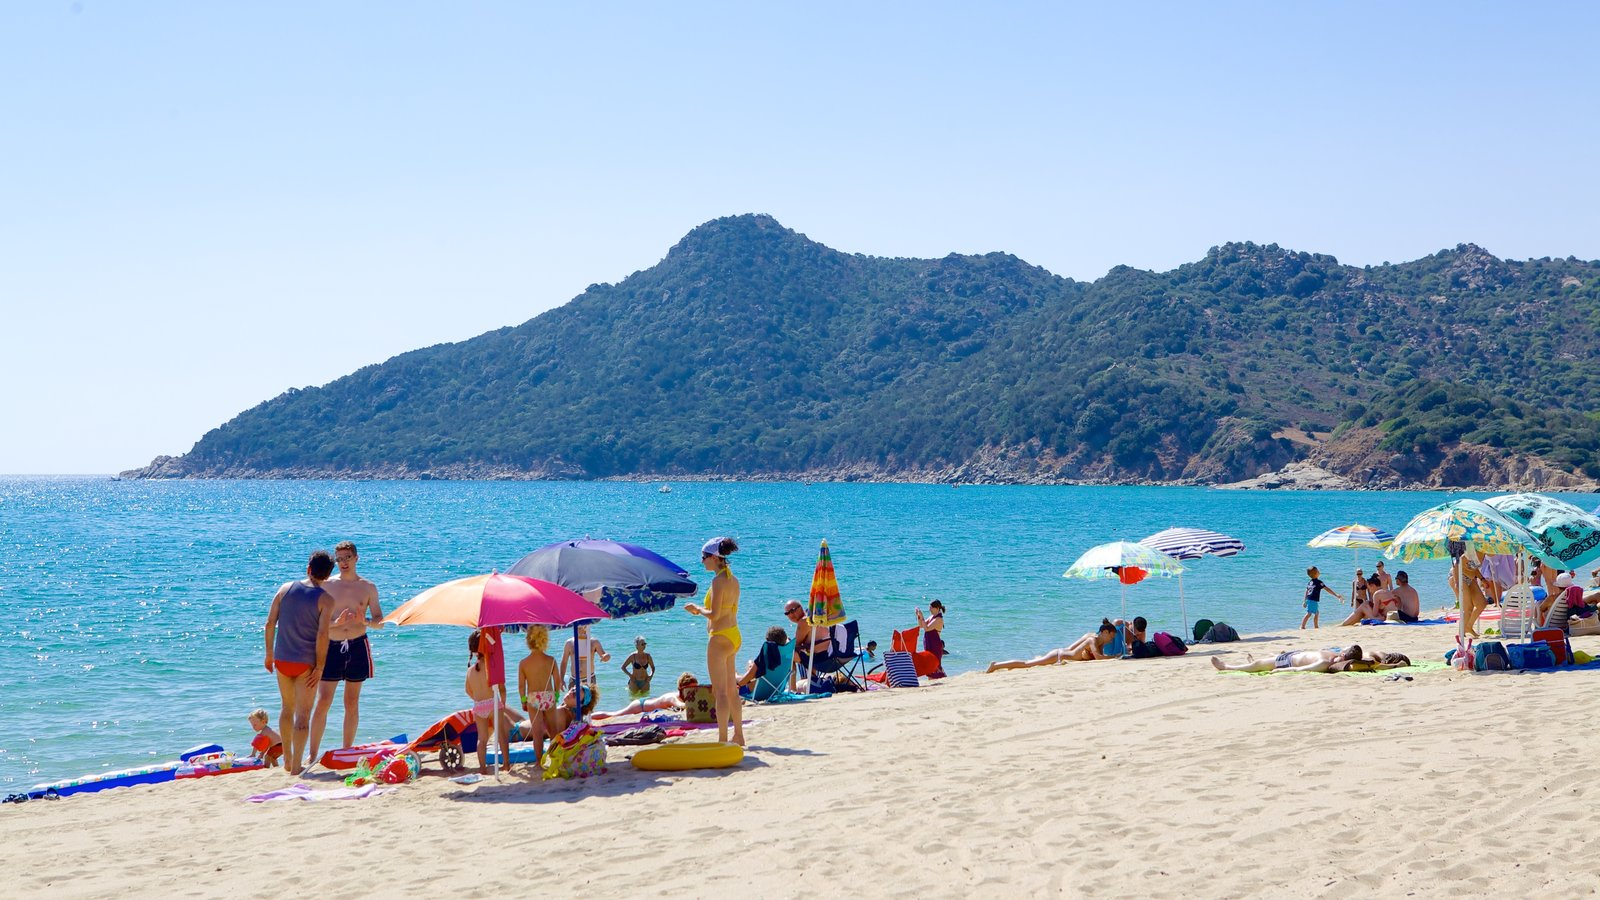 Cala Sinzias which includes a sandy beach as well as a large group of people